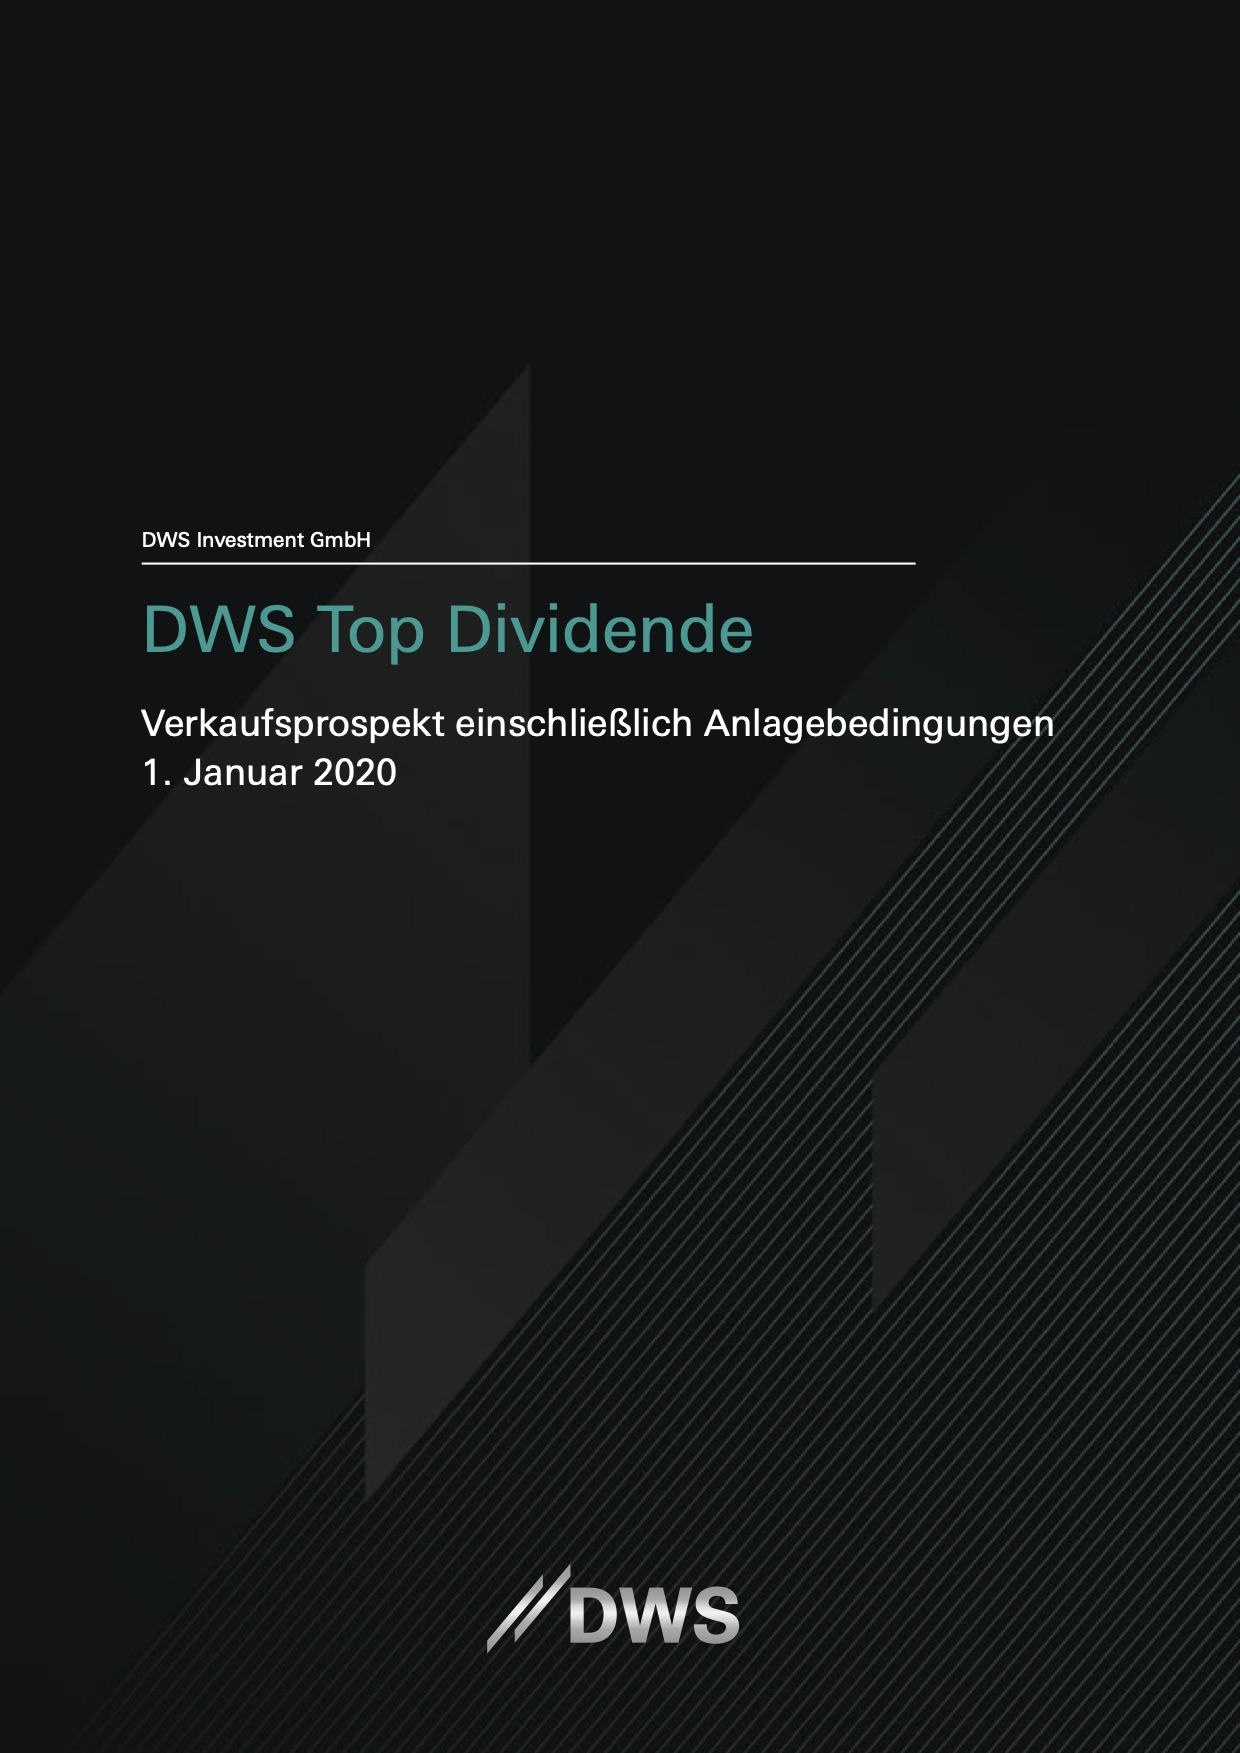 DWS Top Dividende